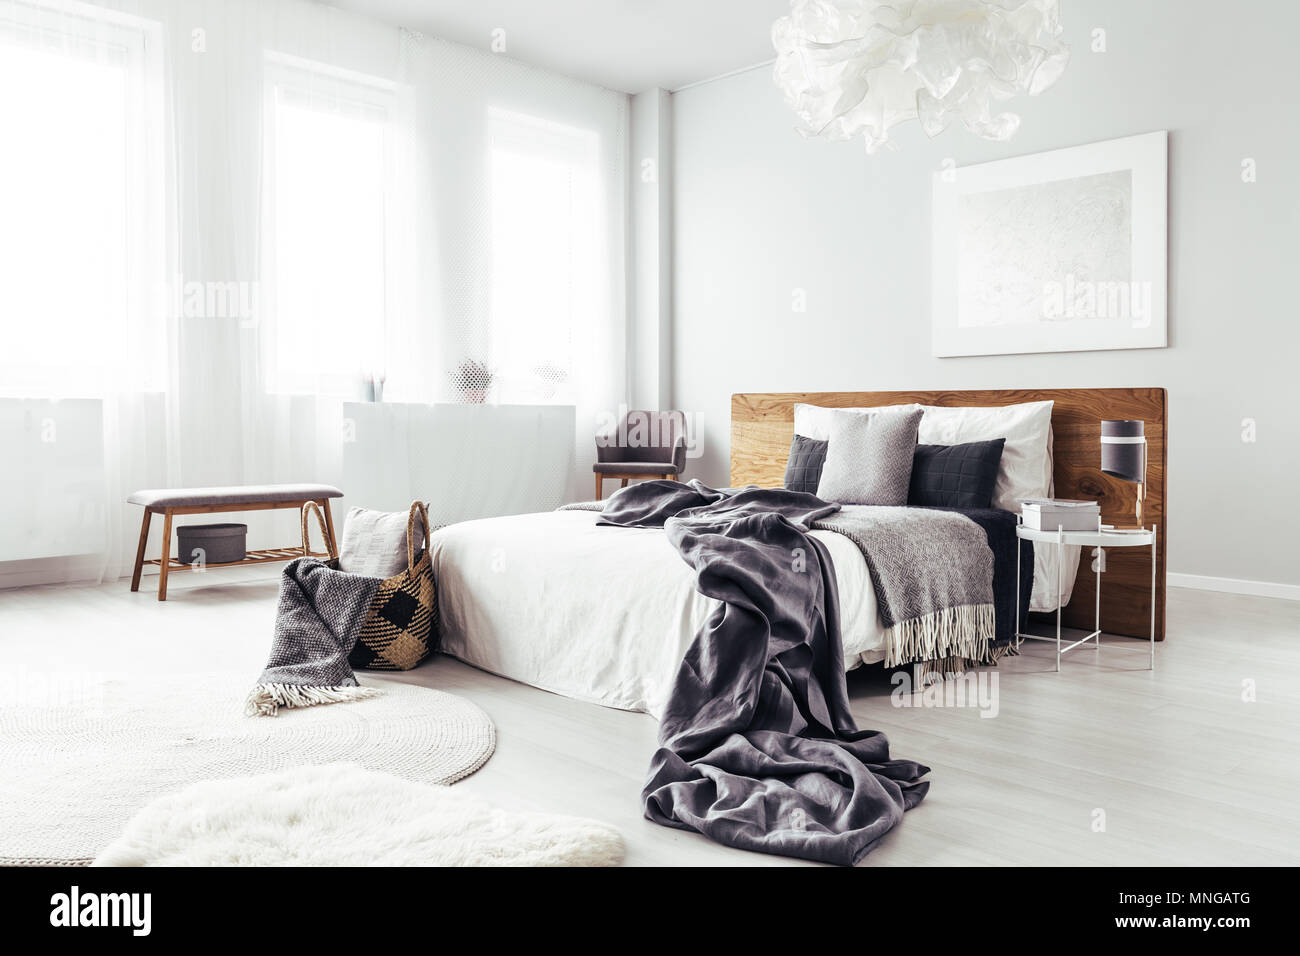 Bedsheets On King Size Bed With Wooden Bedhead In Bright Bedroom